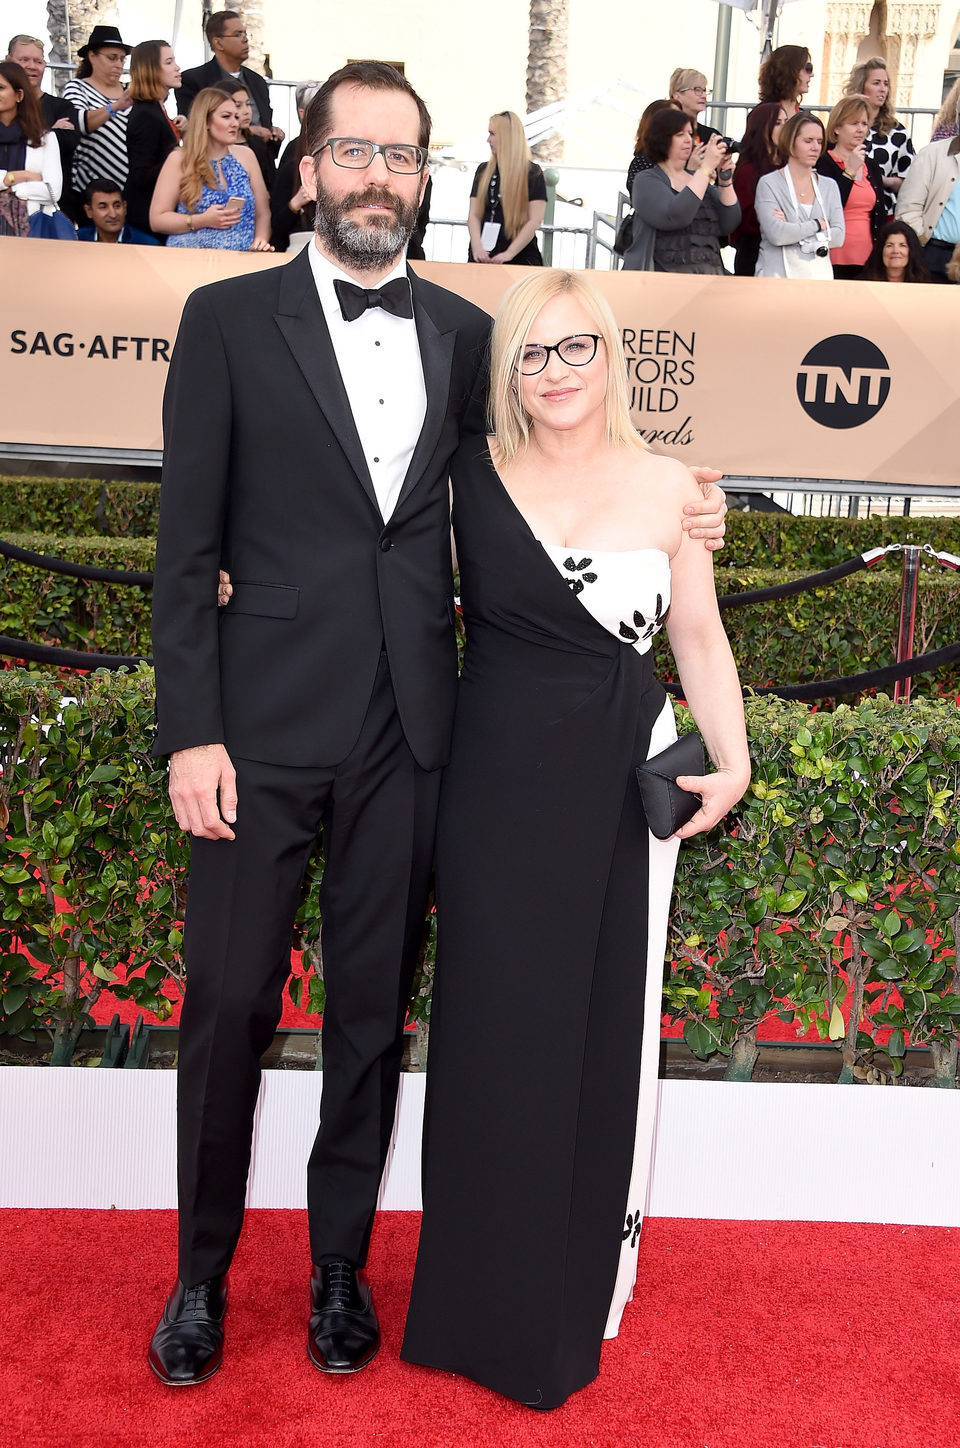 Patricia Arquette and Eric White in red carpte of SAG Awards 2016